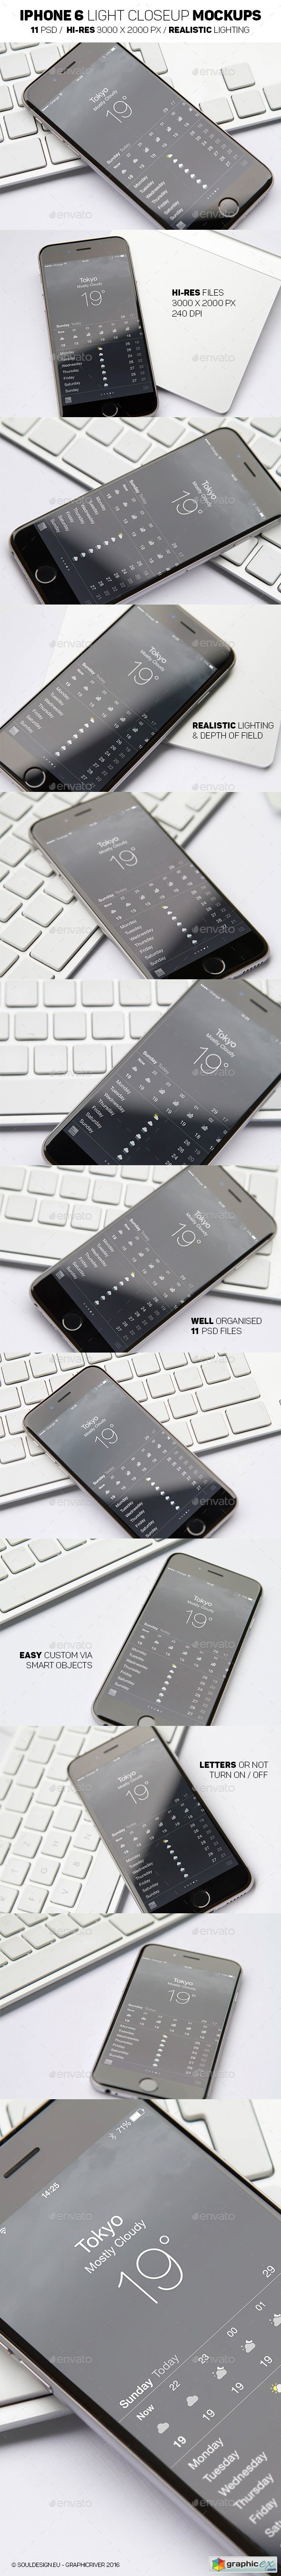 iPhone 6 Light Mockups